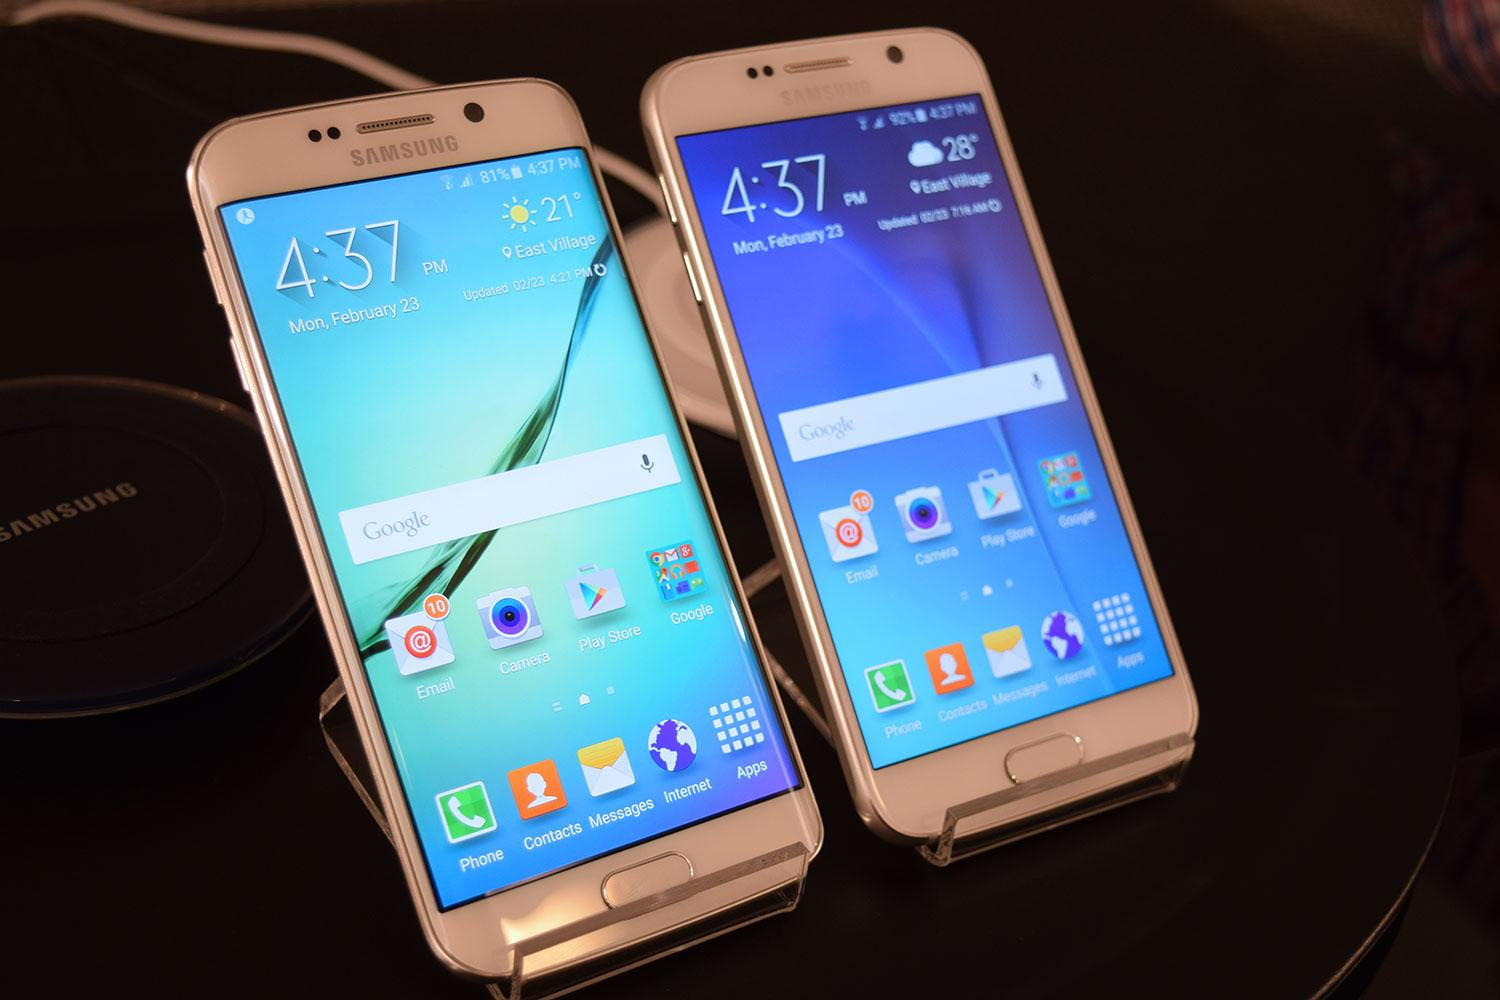 Samsung Galaxy S6 Specs Availability And More Digital Trends S7 Edge Lte 128gb Absolute Black